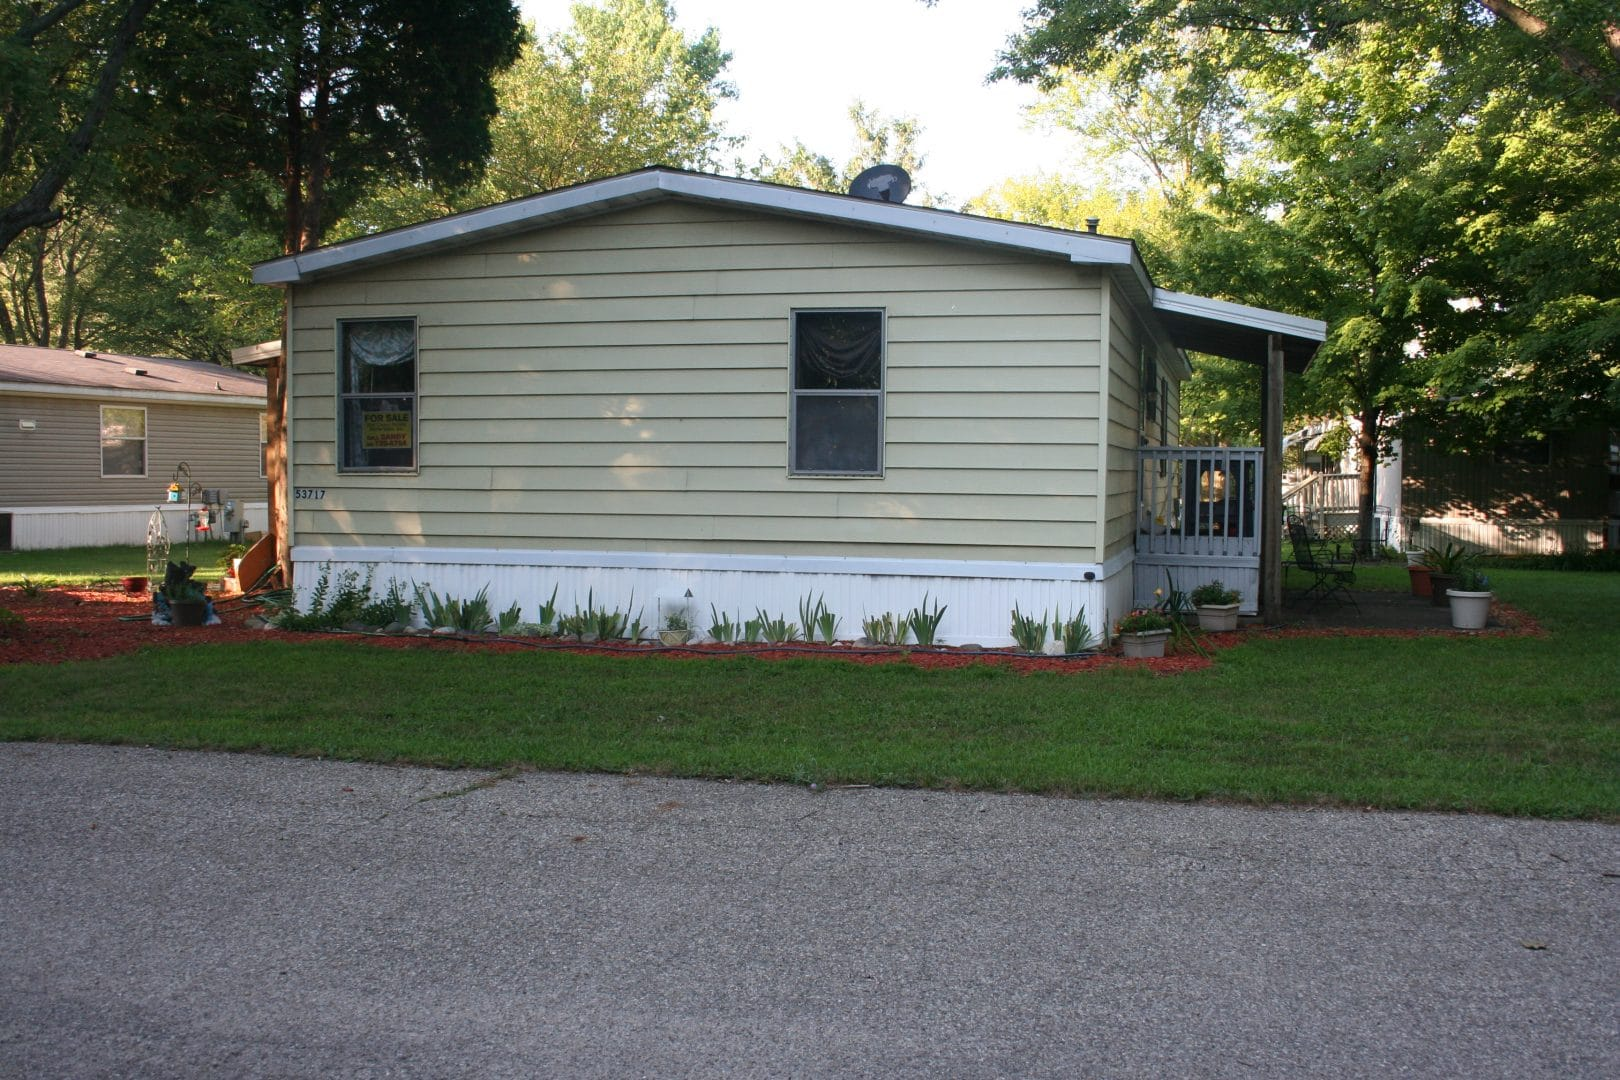 3 Bedroom mobile home for sale near Kalamazoo MI in West Point Hills.